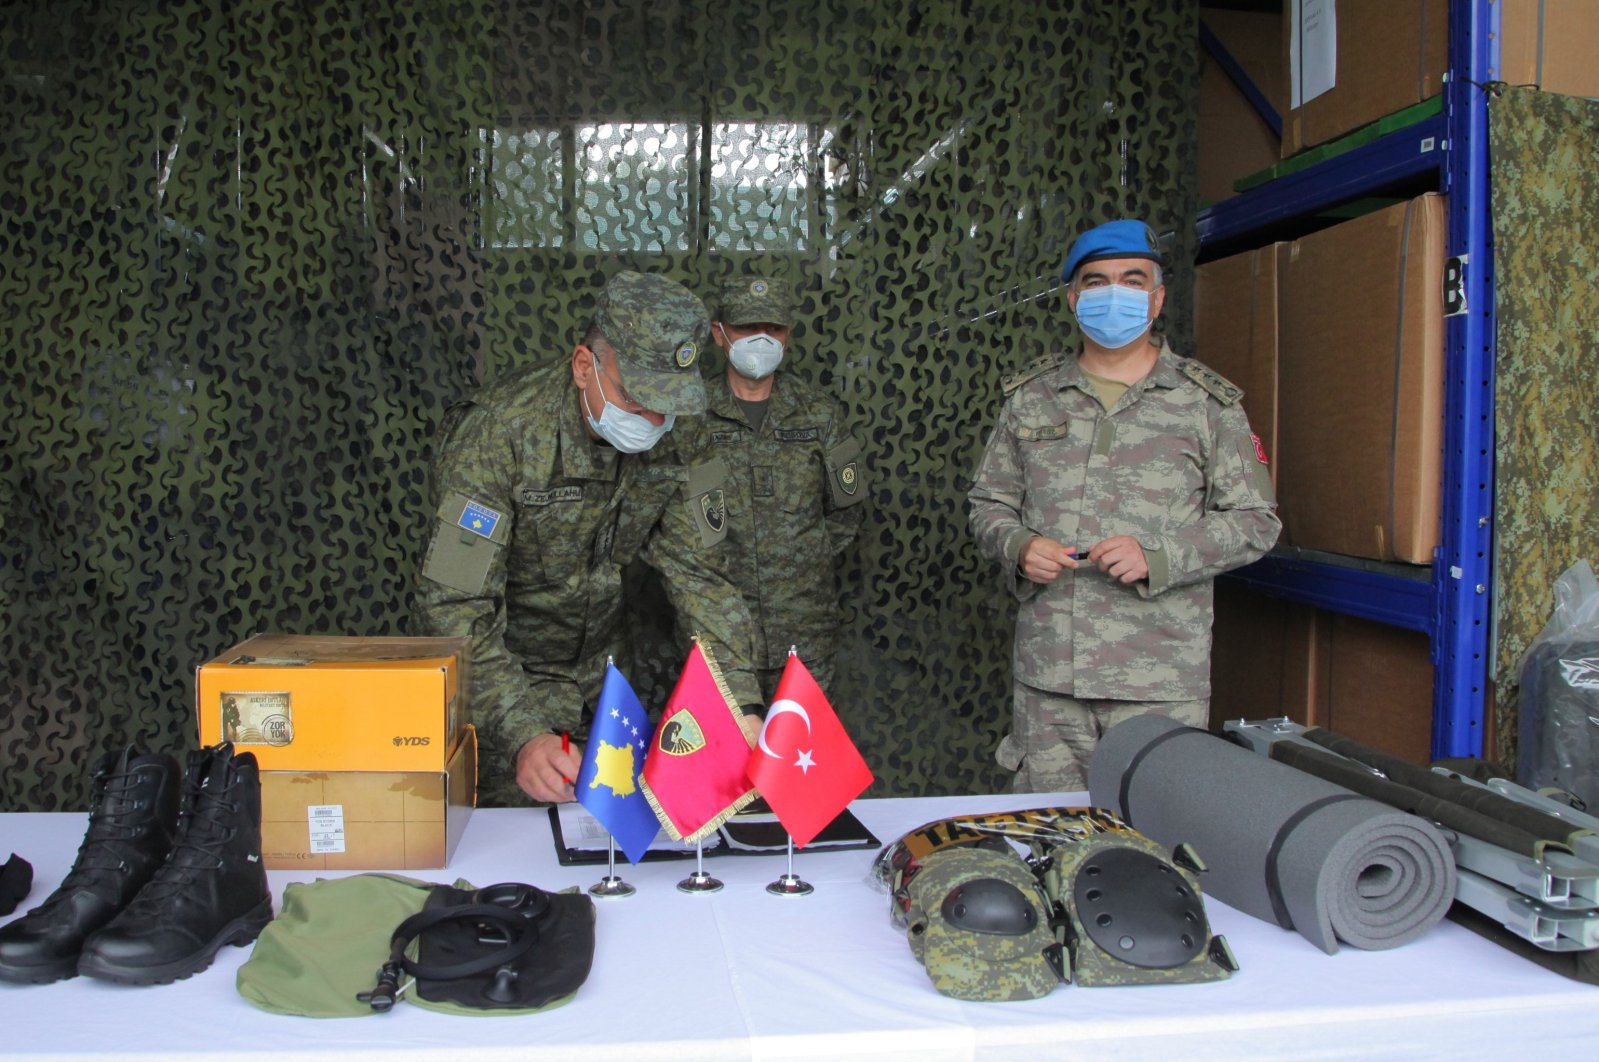 Turkey provides the Kosovo Security Force with $743,000 (TL 5.4 million) worth of donations, Aug. 10, 2020. (AA)